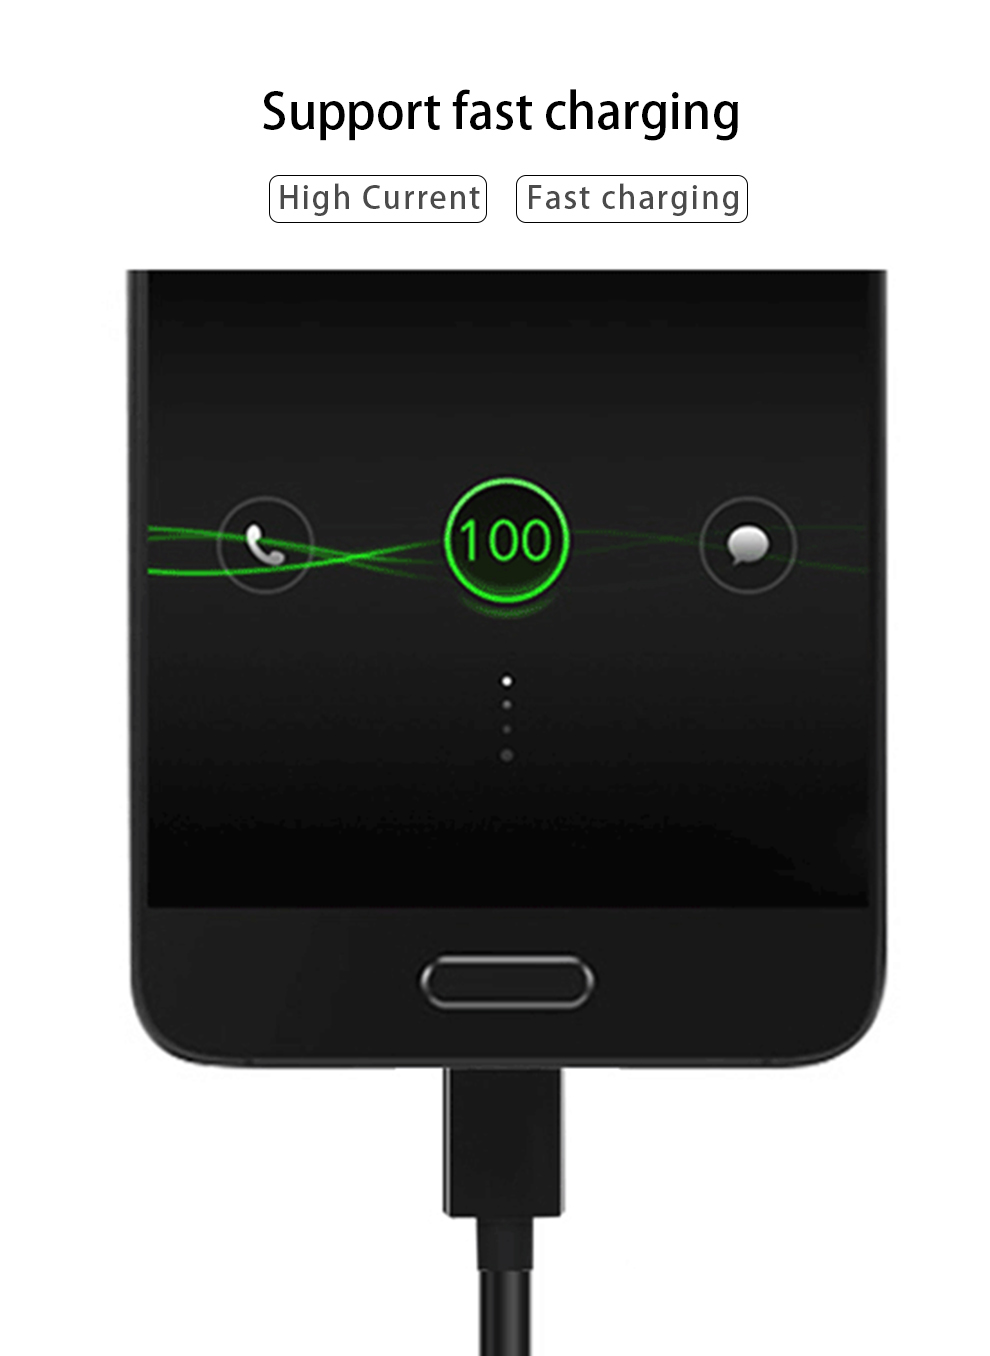 samsung s8 s9 quickly charger 10-10